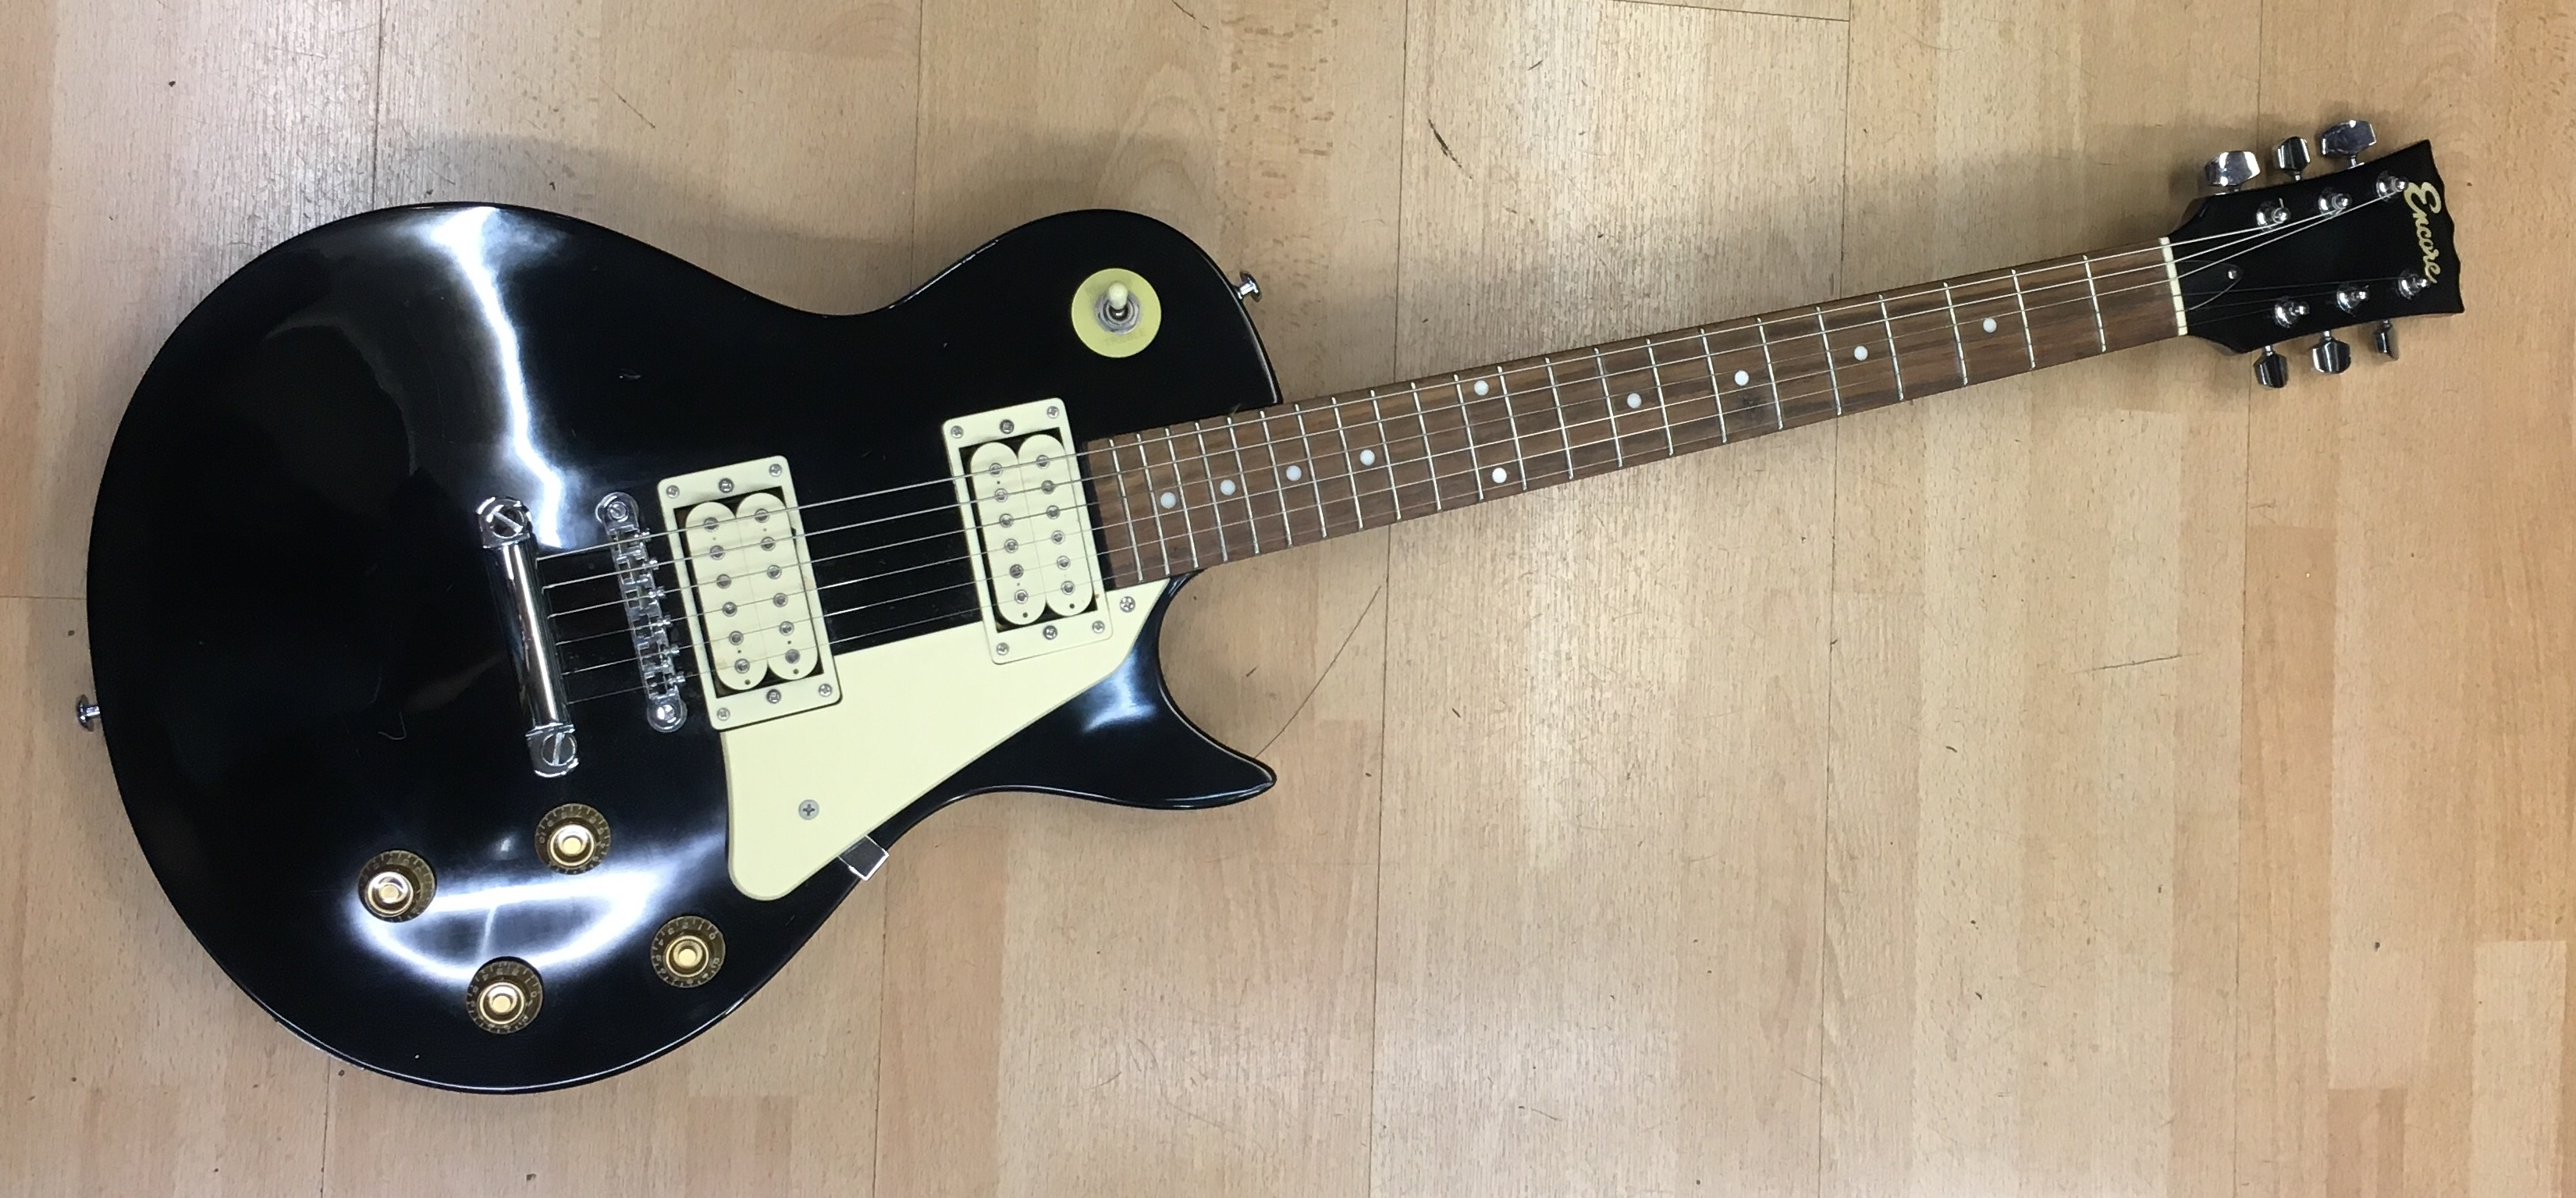 Buy Sell And Exchange Electric Guitars At X Electrical